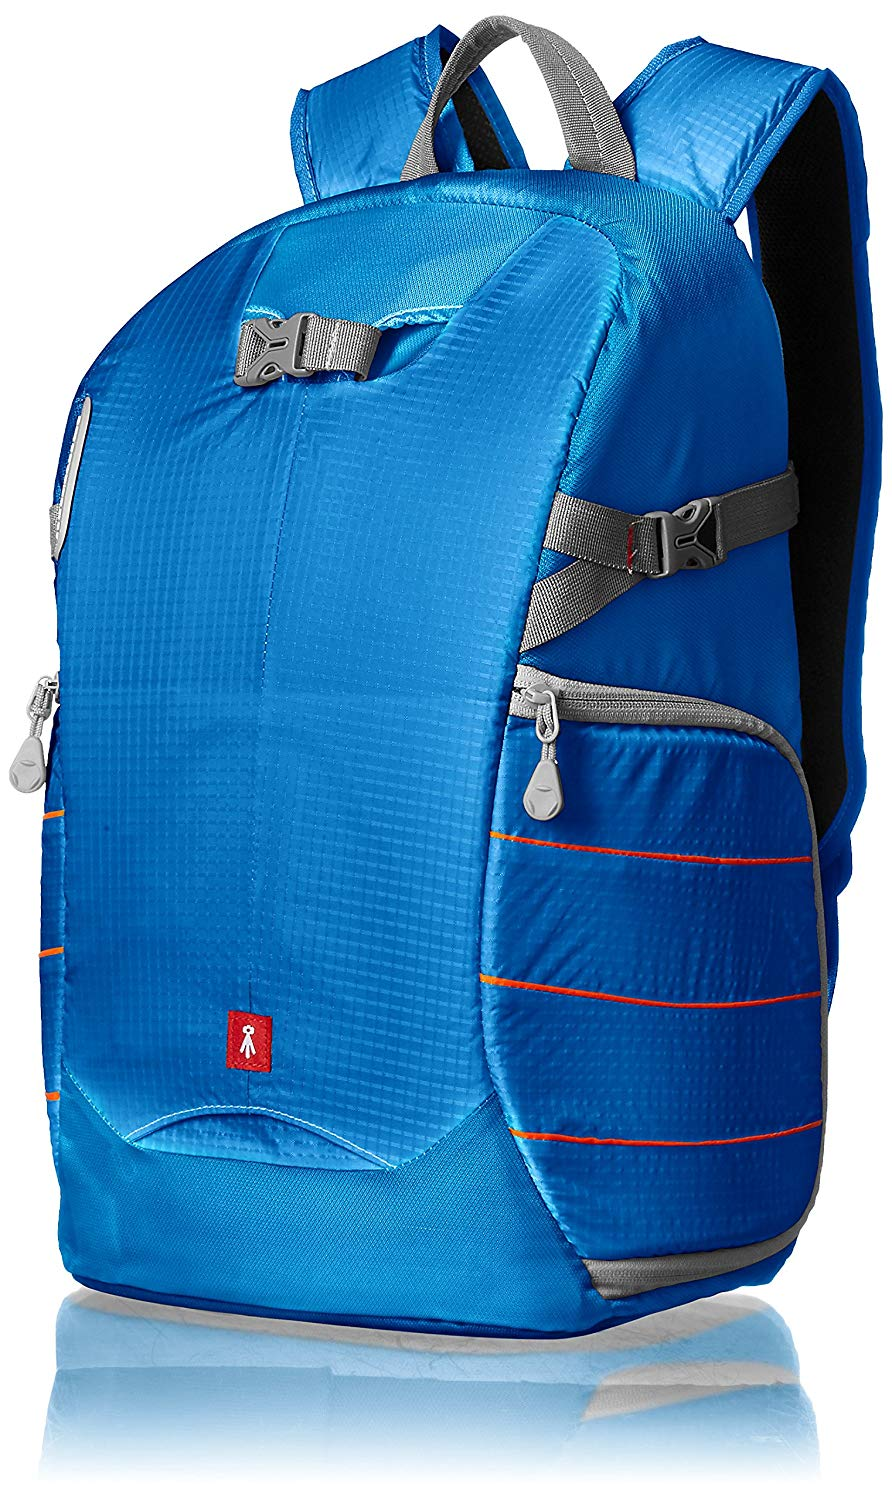 AmazonBasics Camera Backpack, Trekker Series – Blue